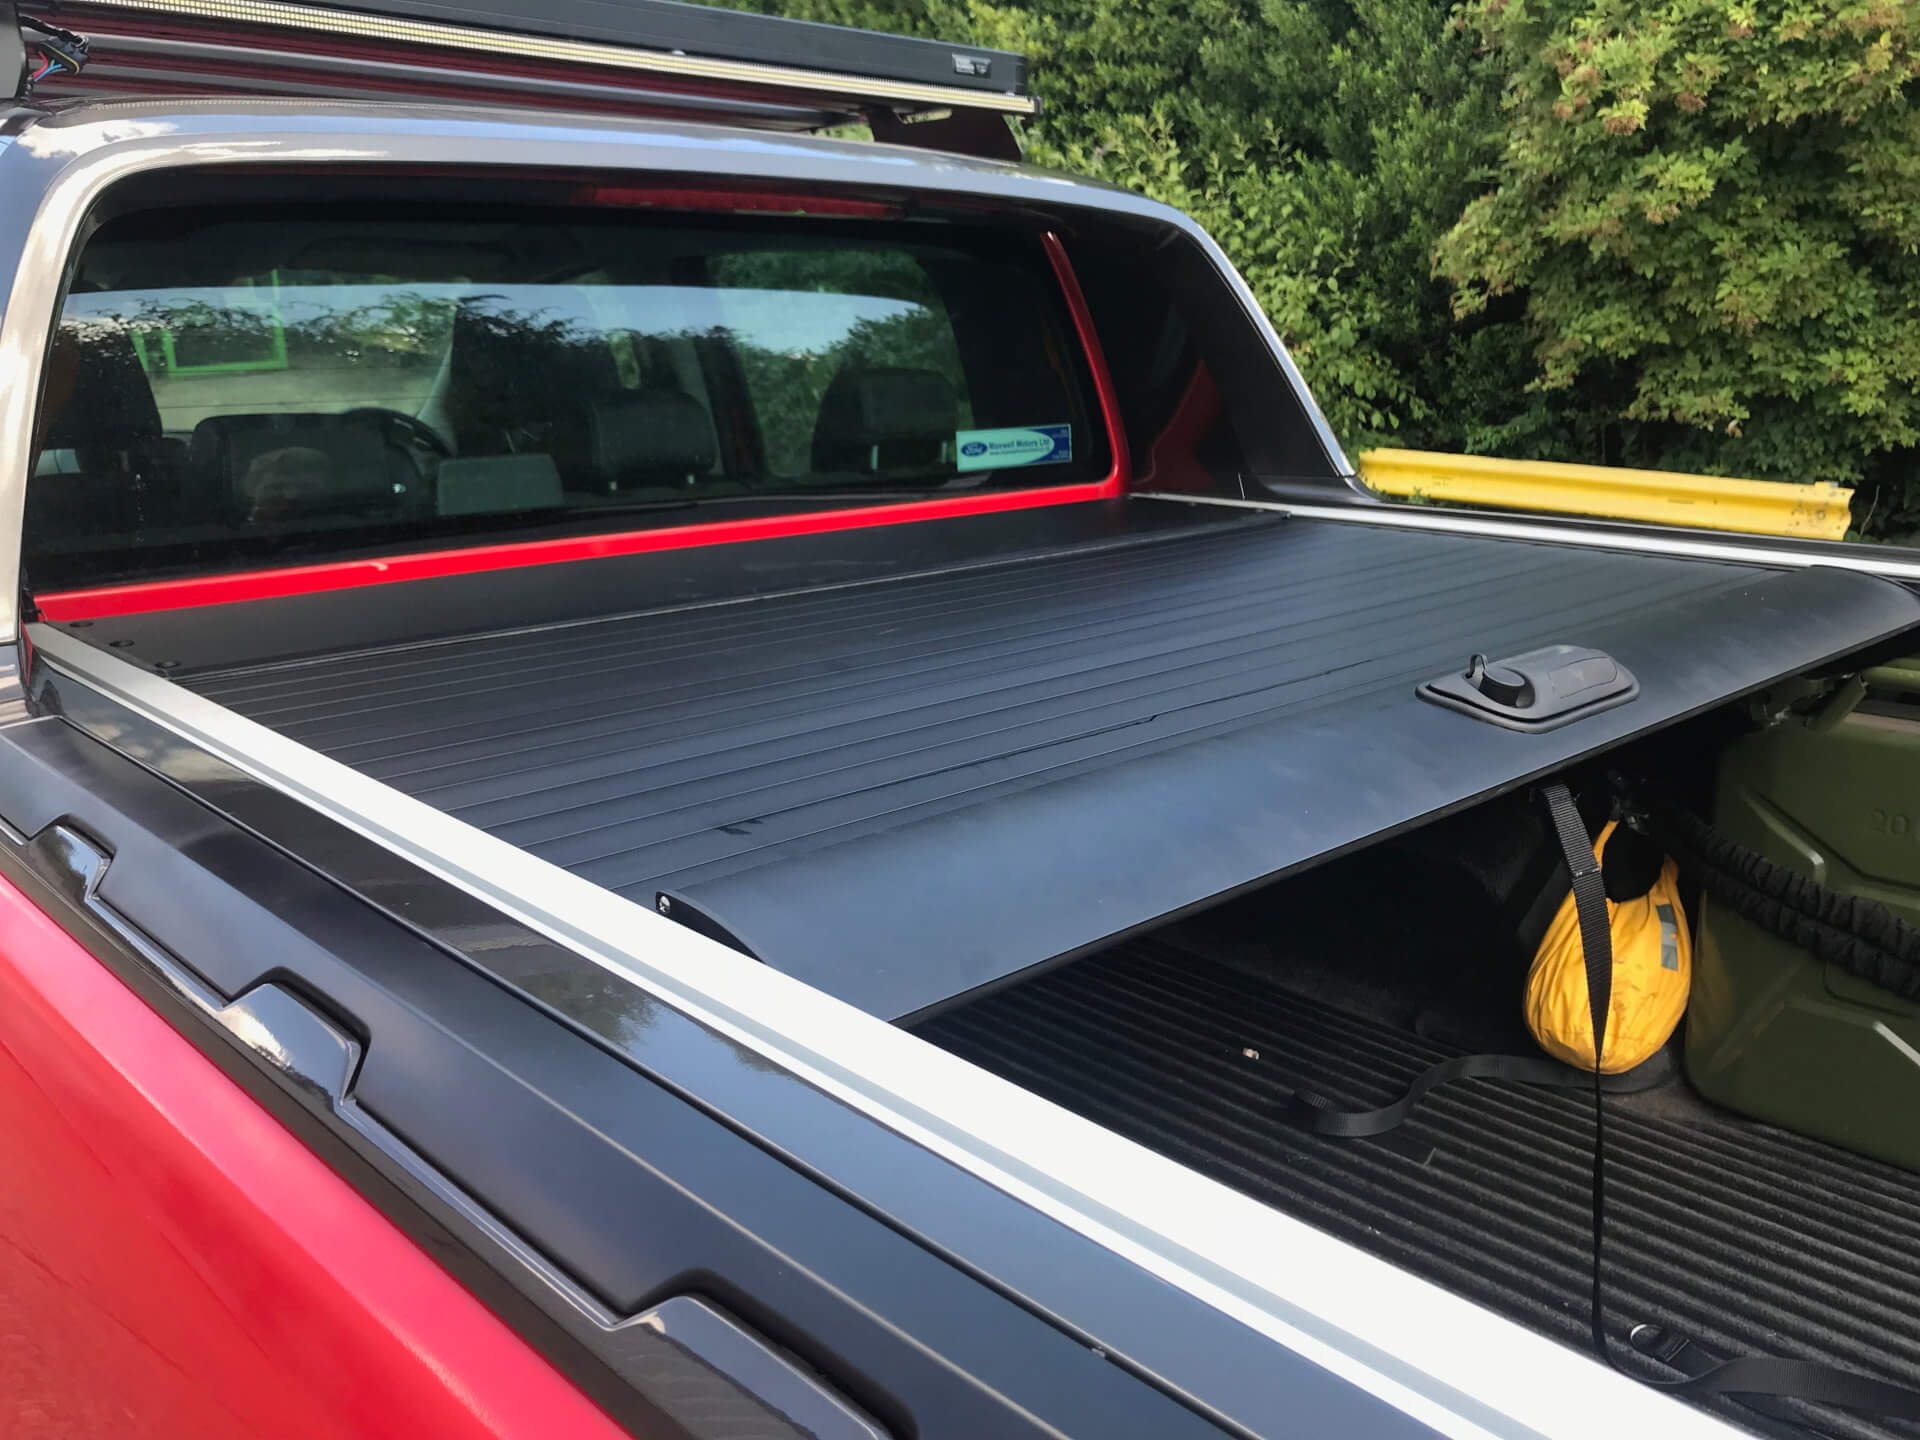 Direct4x4 pickup truck roll and lock style load bed tonneau cover on a red Ford Ranger Wildtrak